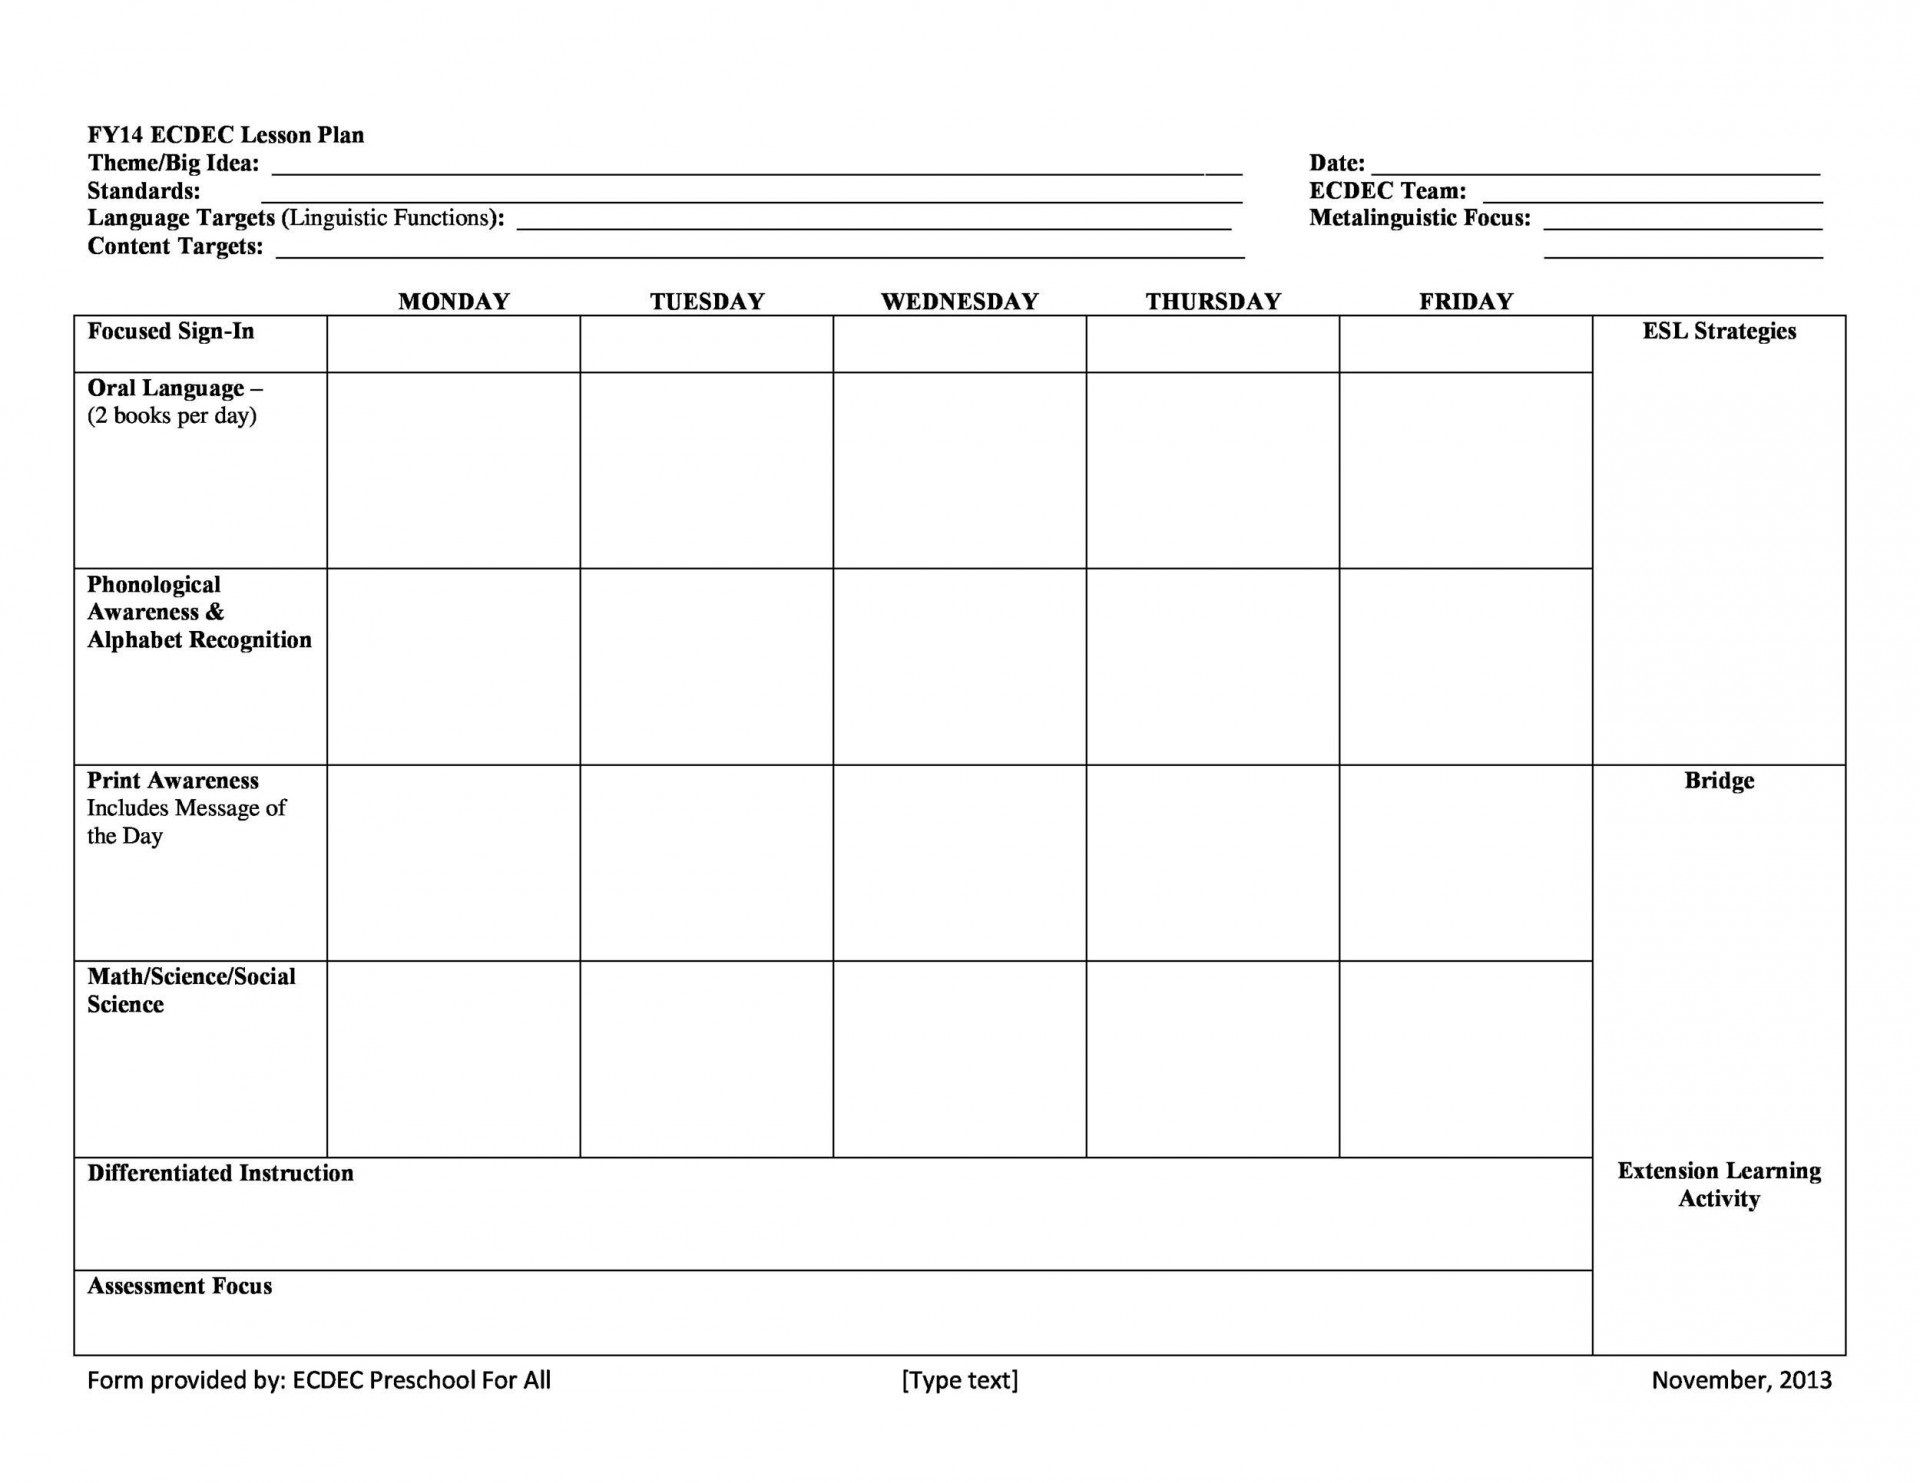 002 Best Printable Lesson Plan Template Free Image  Preschool Weekly Pdf For ToddlerFull